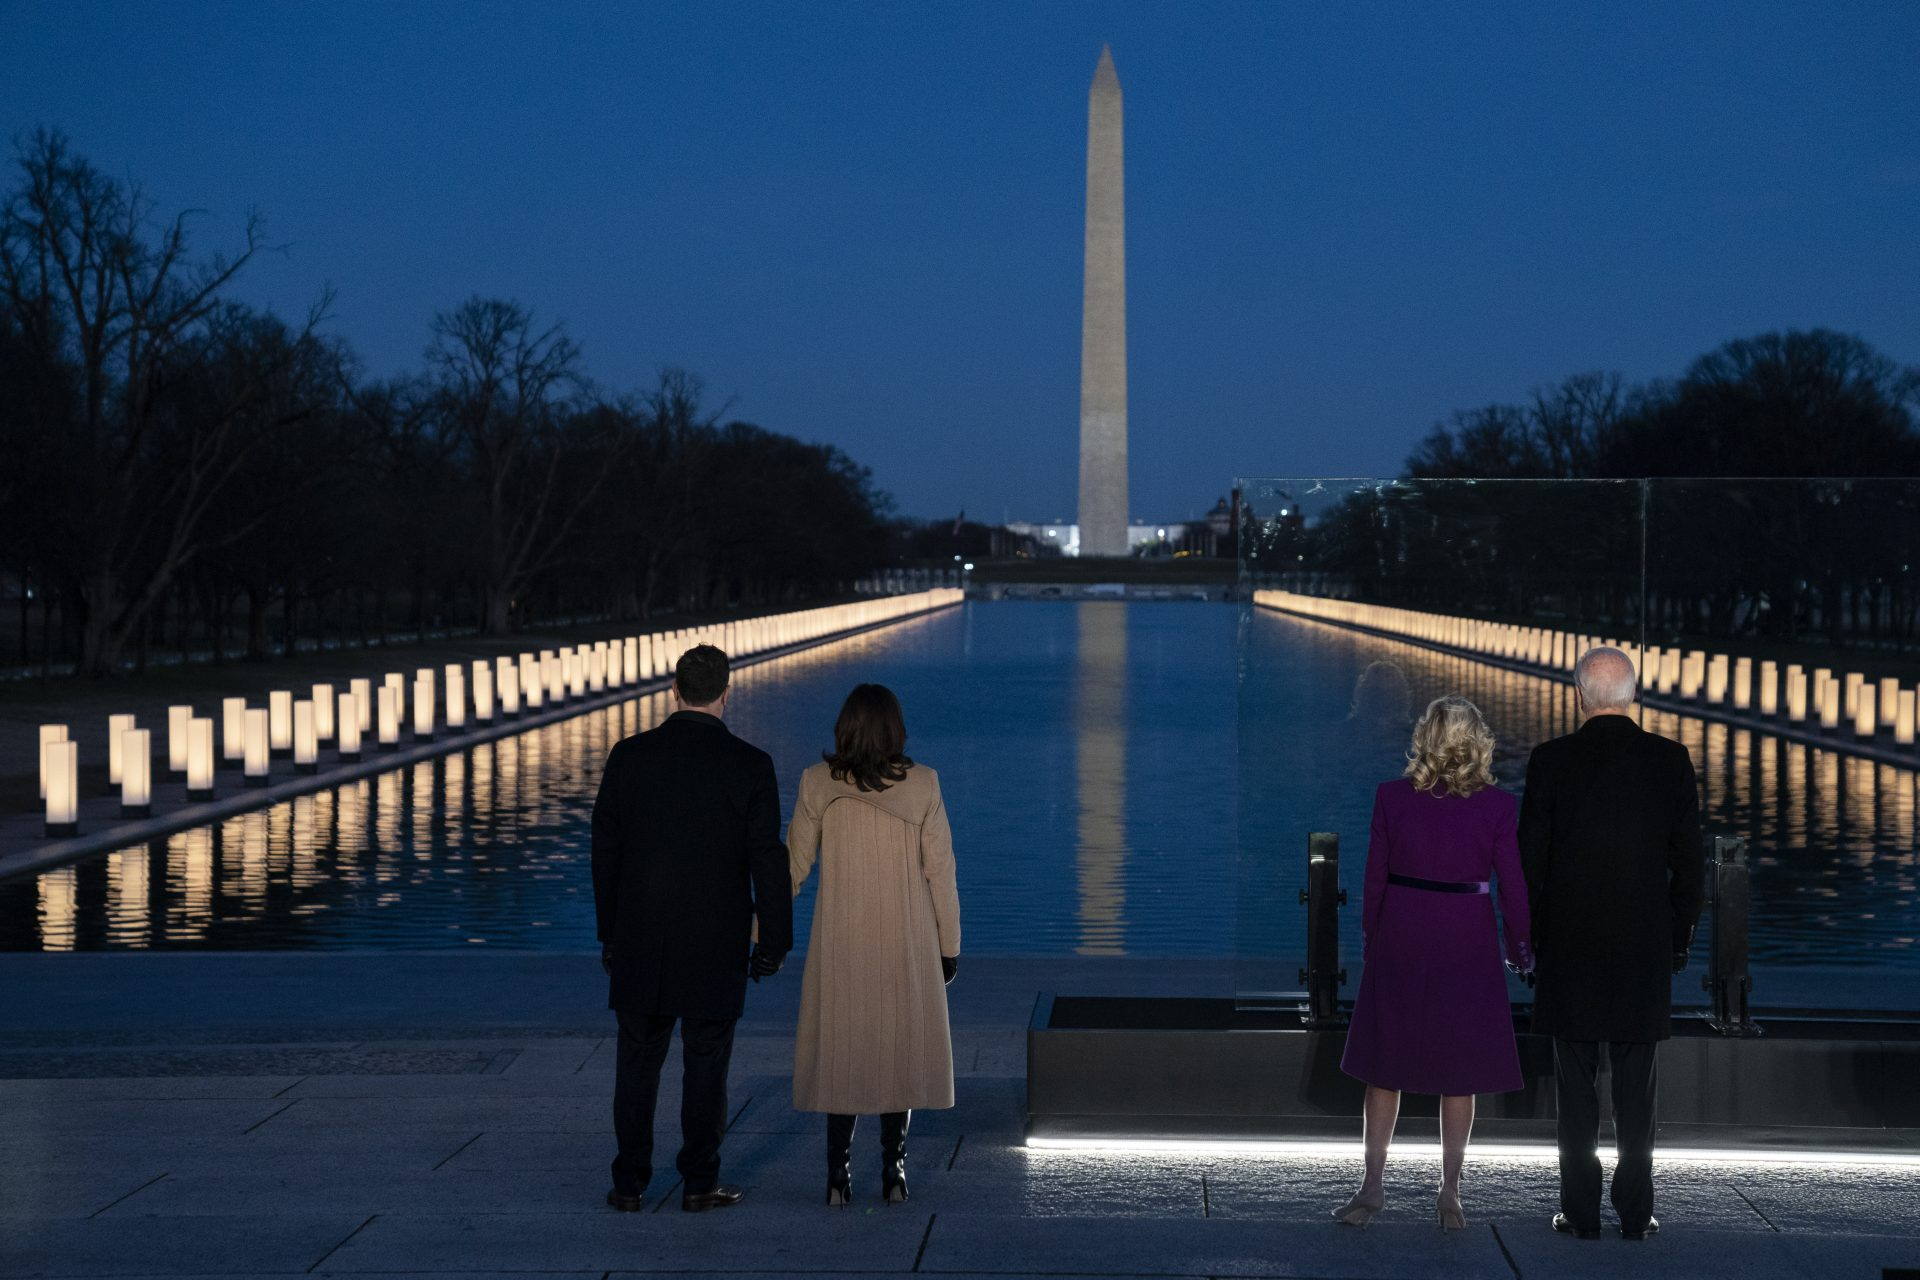 President-elect Joe Biden and his wife Jill Biden are joined by Vice President-elect Kamala Harris and her husband Doug Emhoff to participate in a COVID-19 memorial event at the Lincoln Memorial Reflecting Pool, Tuesday, Jan. 19, 2021, in Washington.